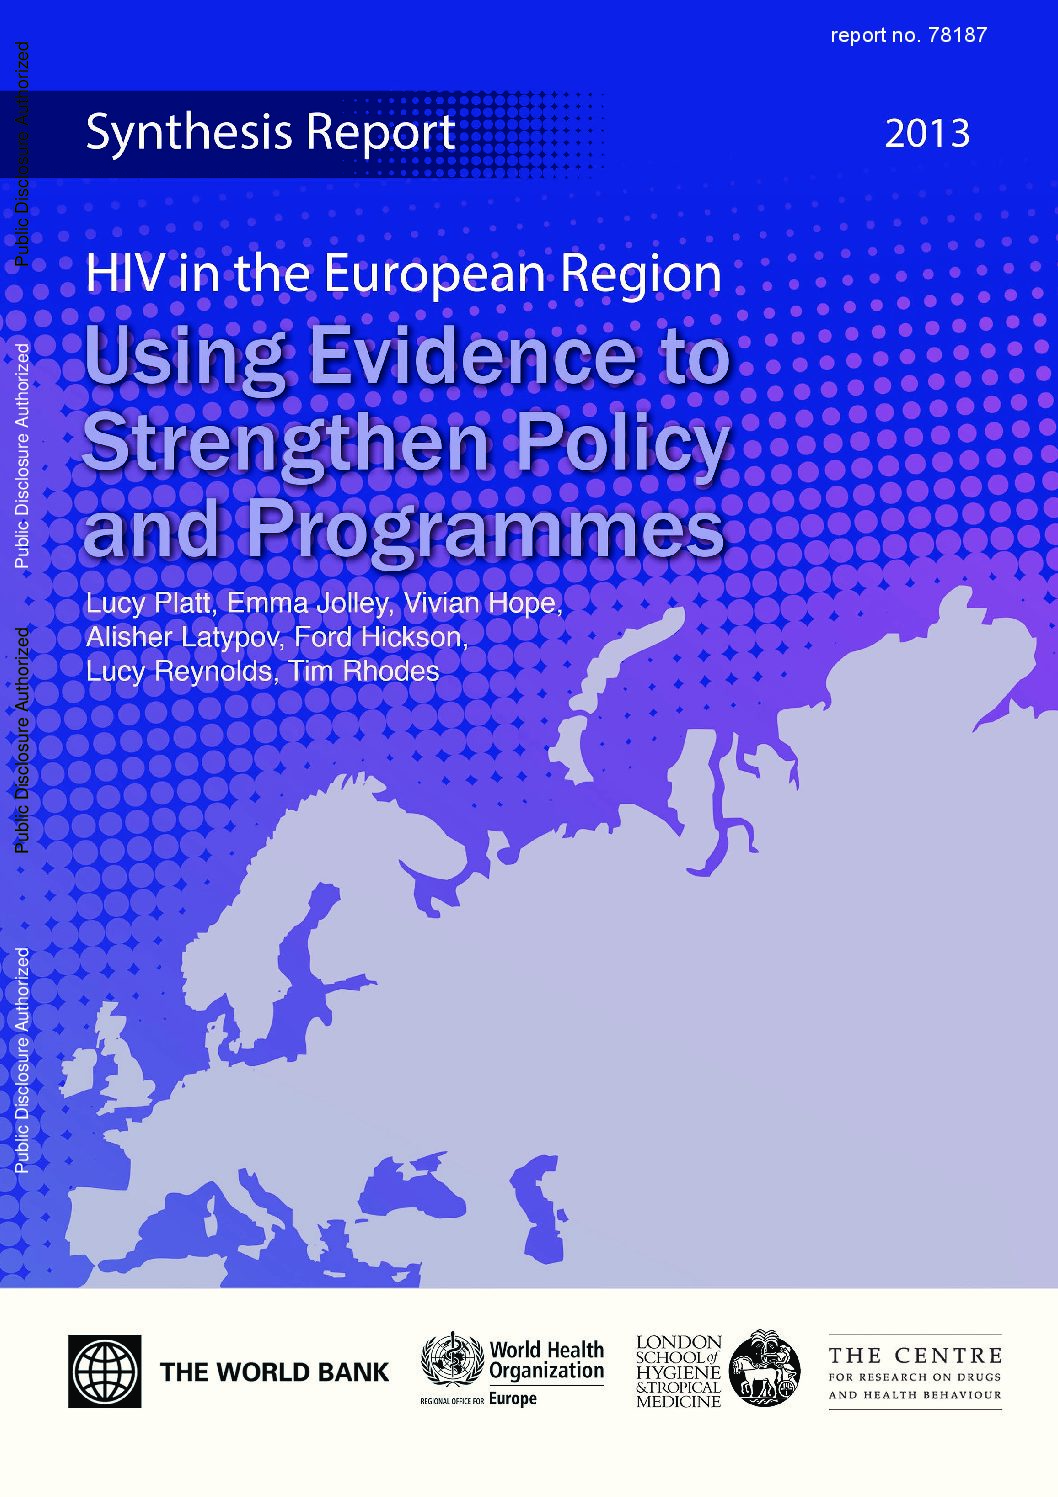 HIV Epidemics in the European Region: Vulnerability and Response